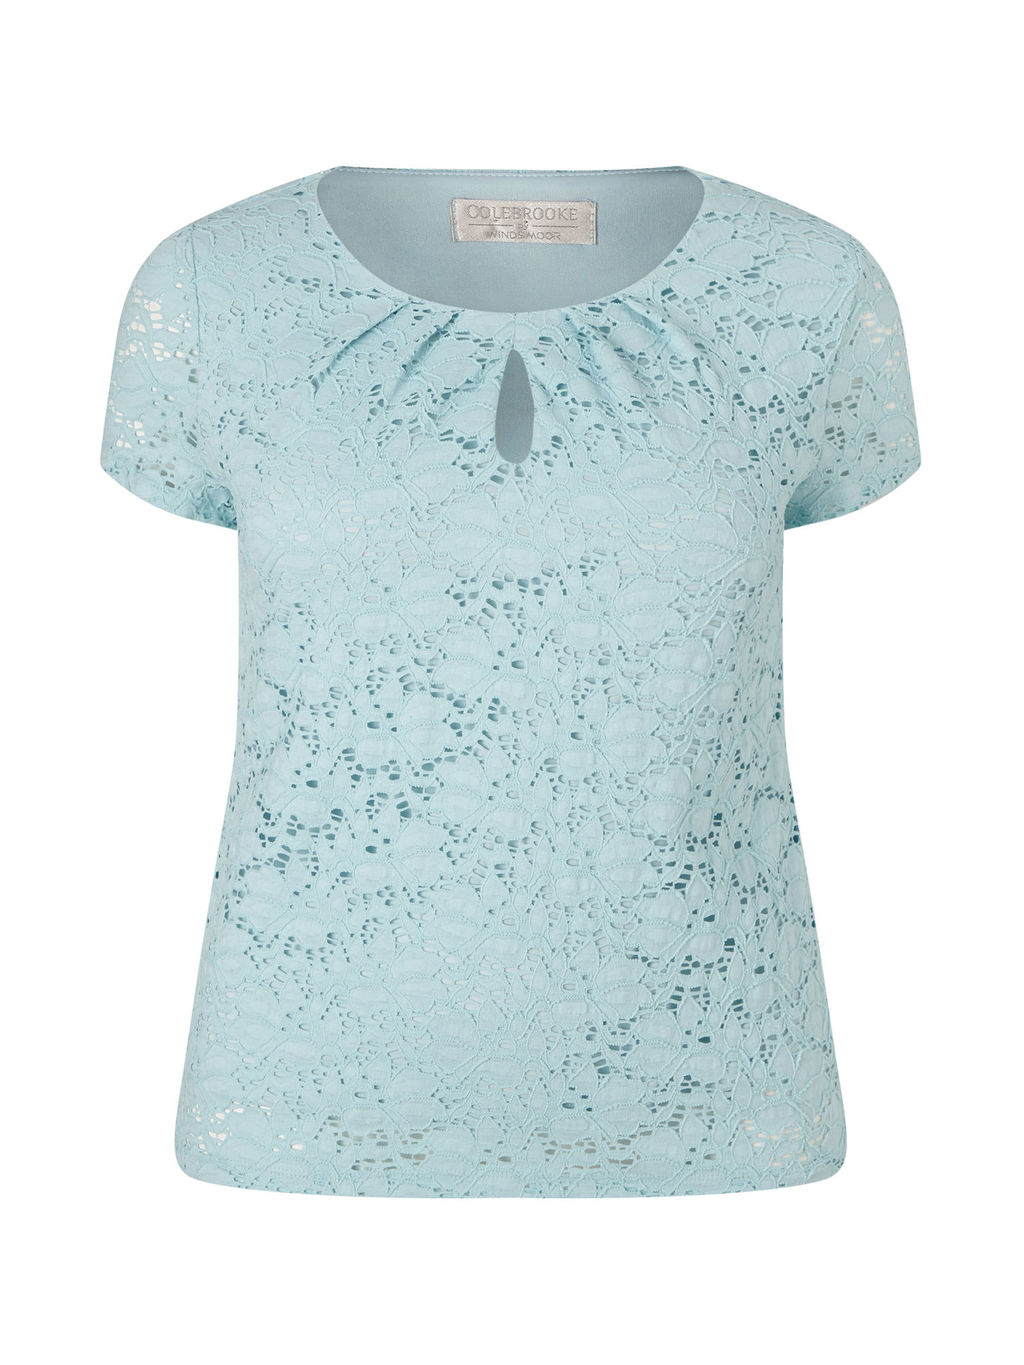 Aqua Lace Top - pattern: plain; bust detail: ruching/gathering/draping/layers/pintuck pleats at bust; predominant colour: turquoise; occasions: casual, creative work; length: standard; style: top; neckline: peep hole neckline; fibres: polyester/polyamide - 100%; fit: body skimming; sleeve length: short sleeve; sleeve style: standard; pattern type: fabric; texture group: other - light to midweight; embellishment: lace; season: s/s 2016